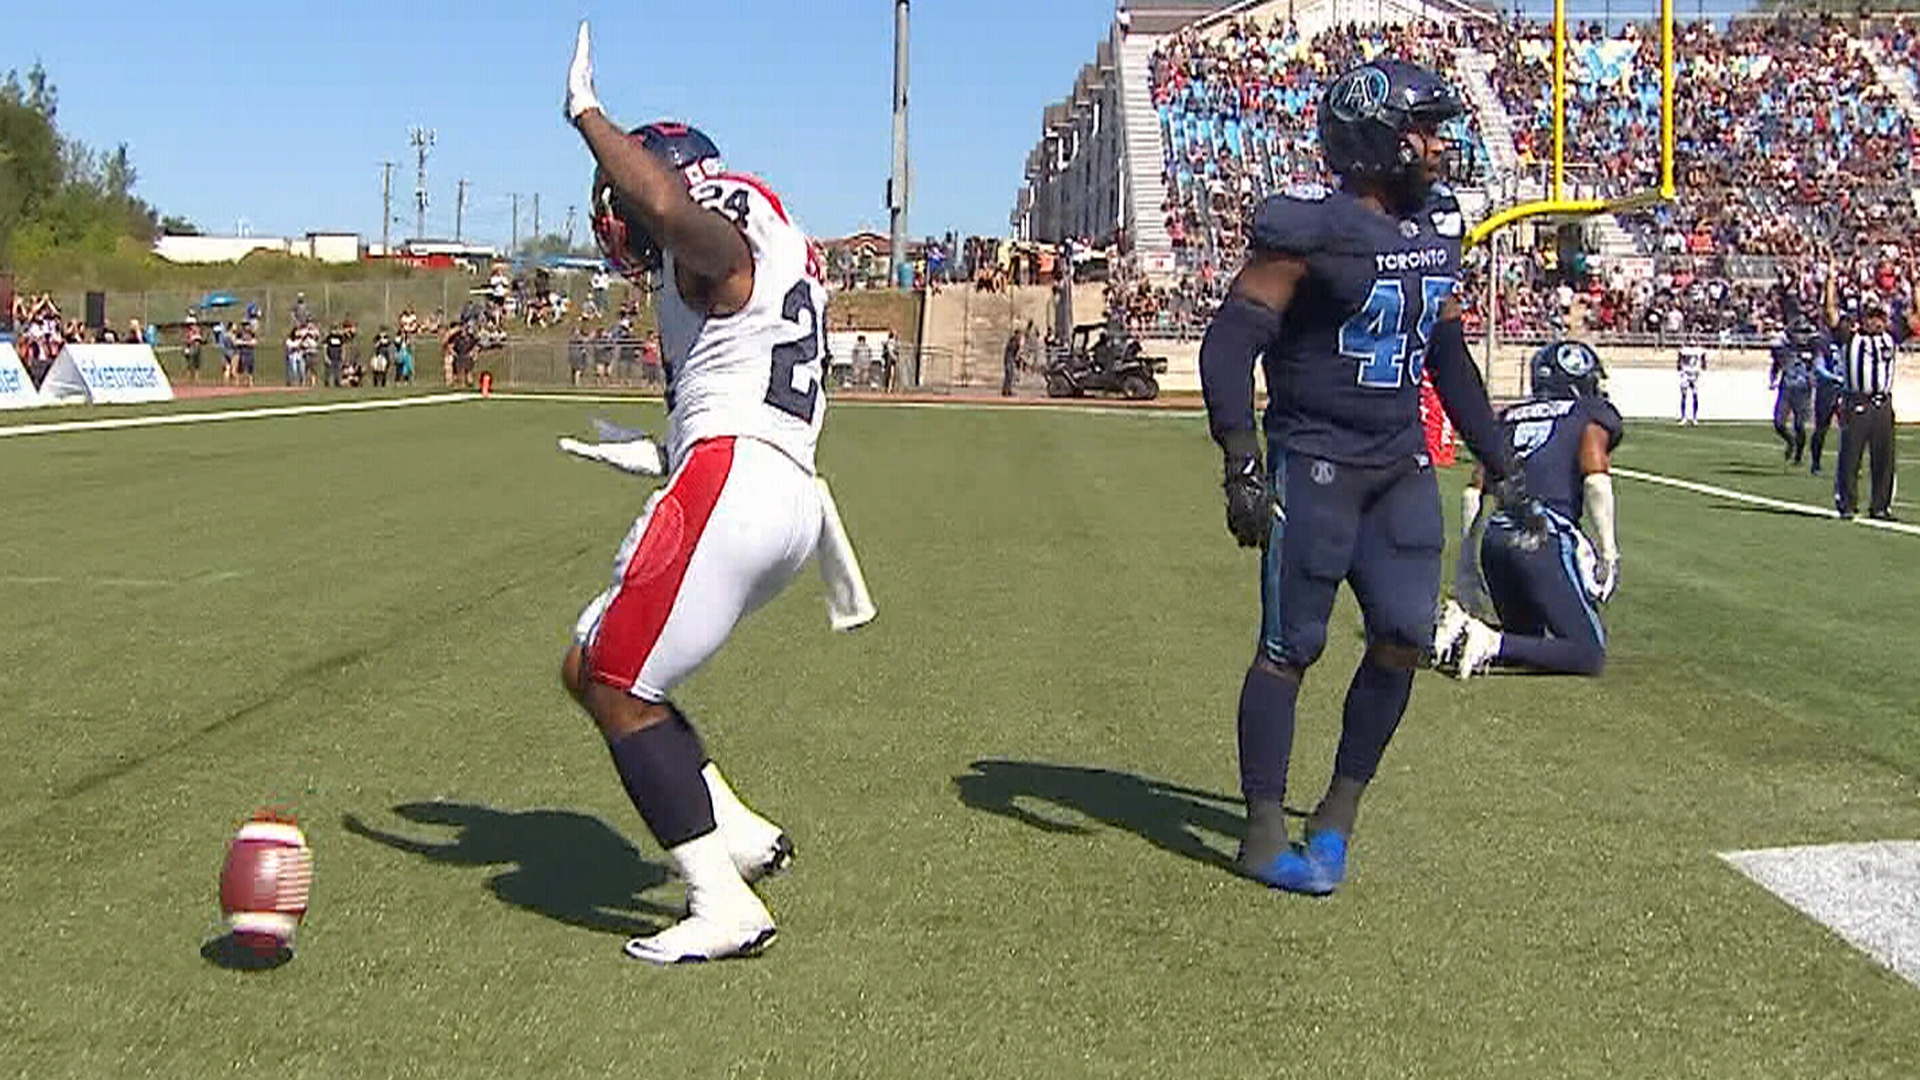 Argos, Als put on a phenomenal show in the Maritimes